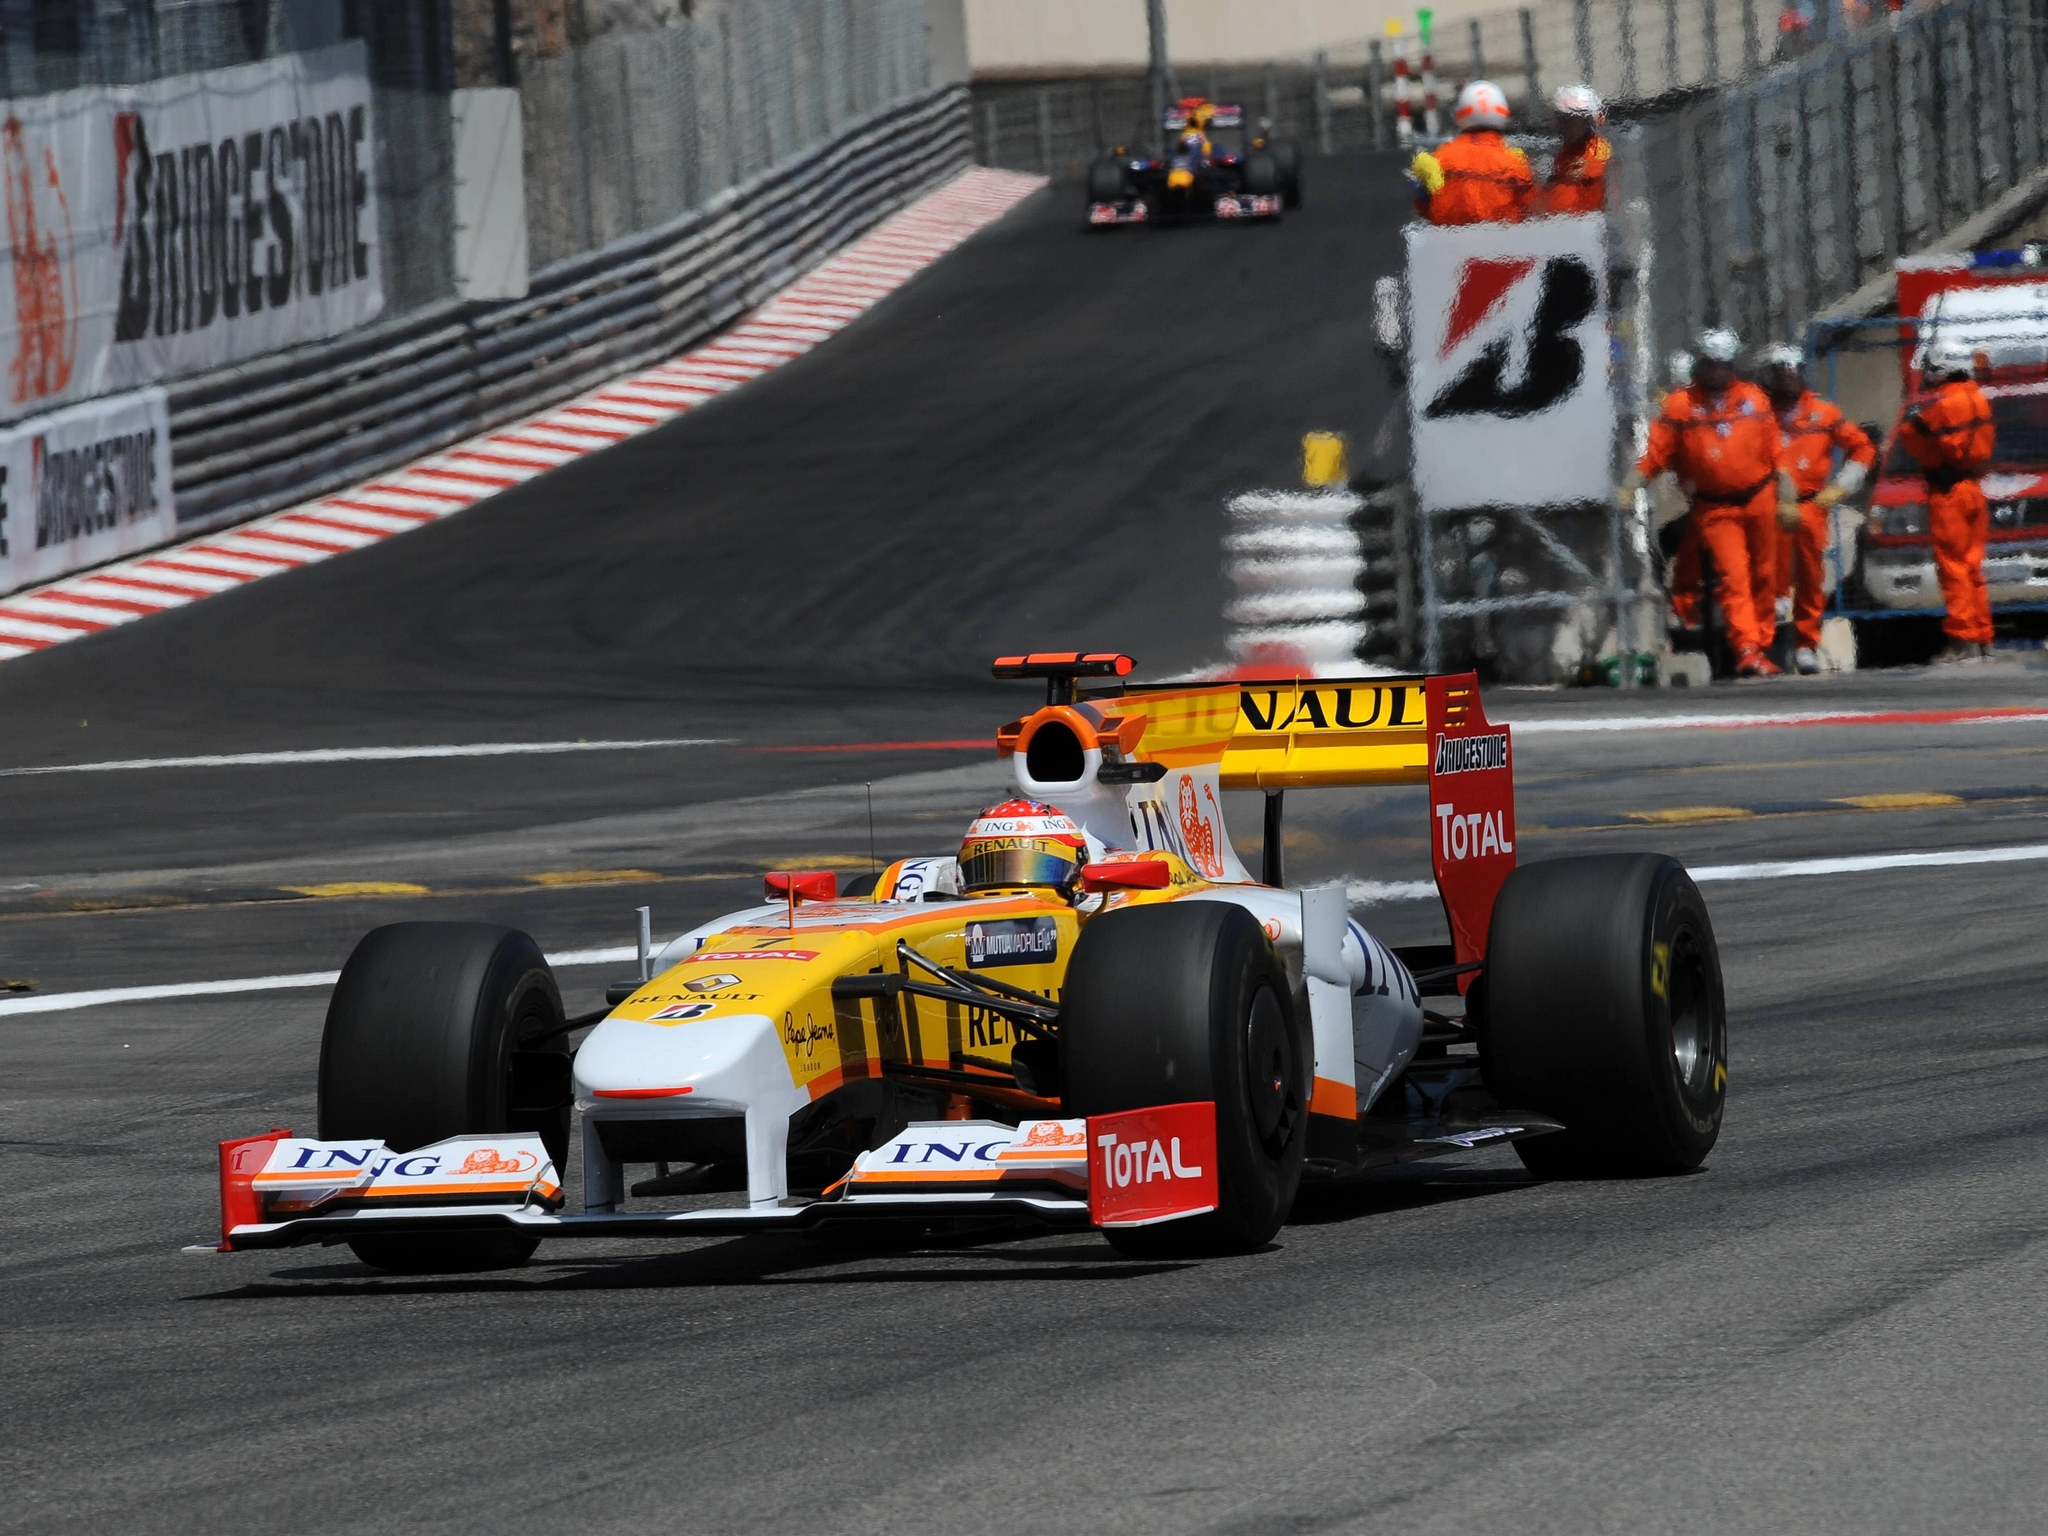 Renault r29 photo - 10